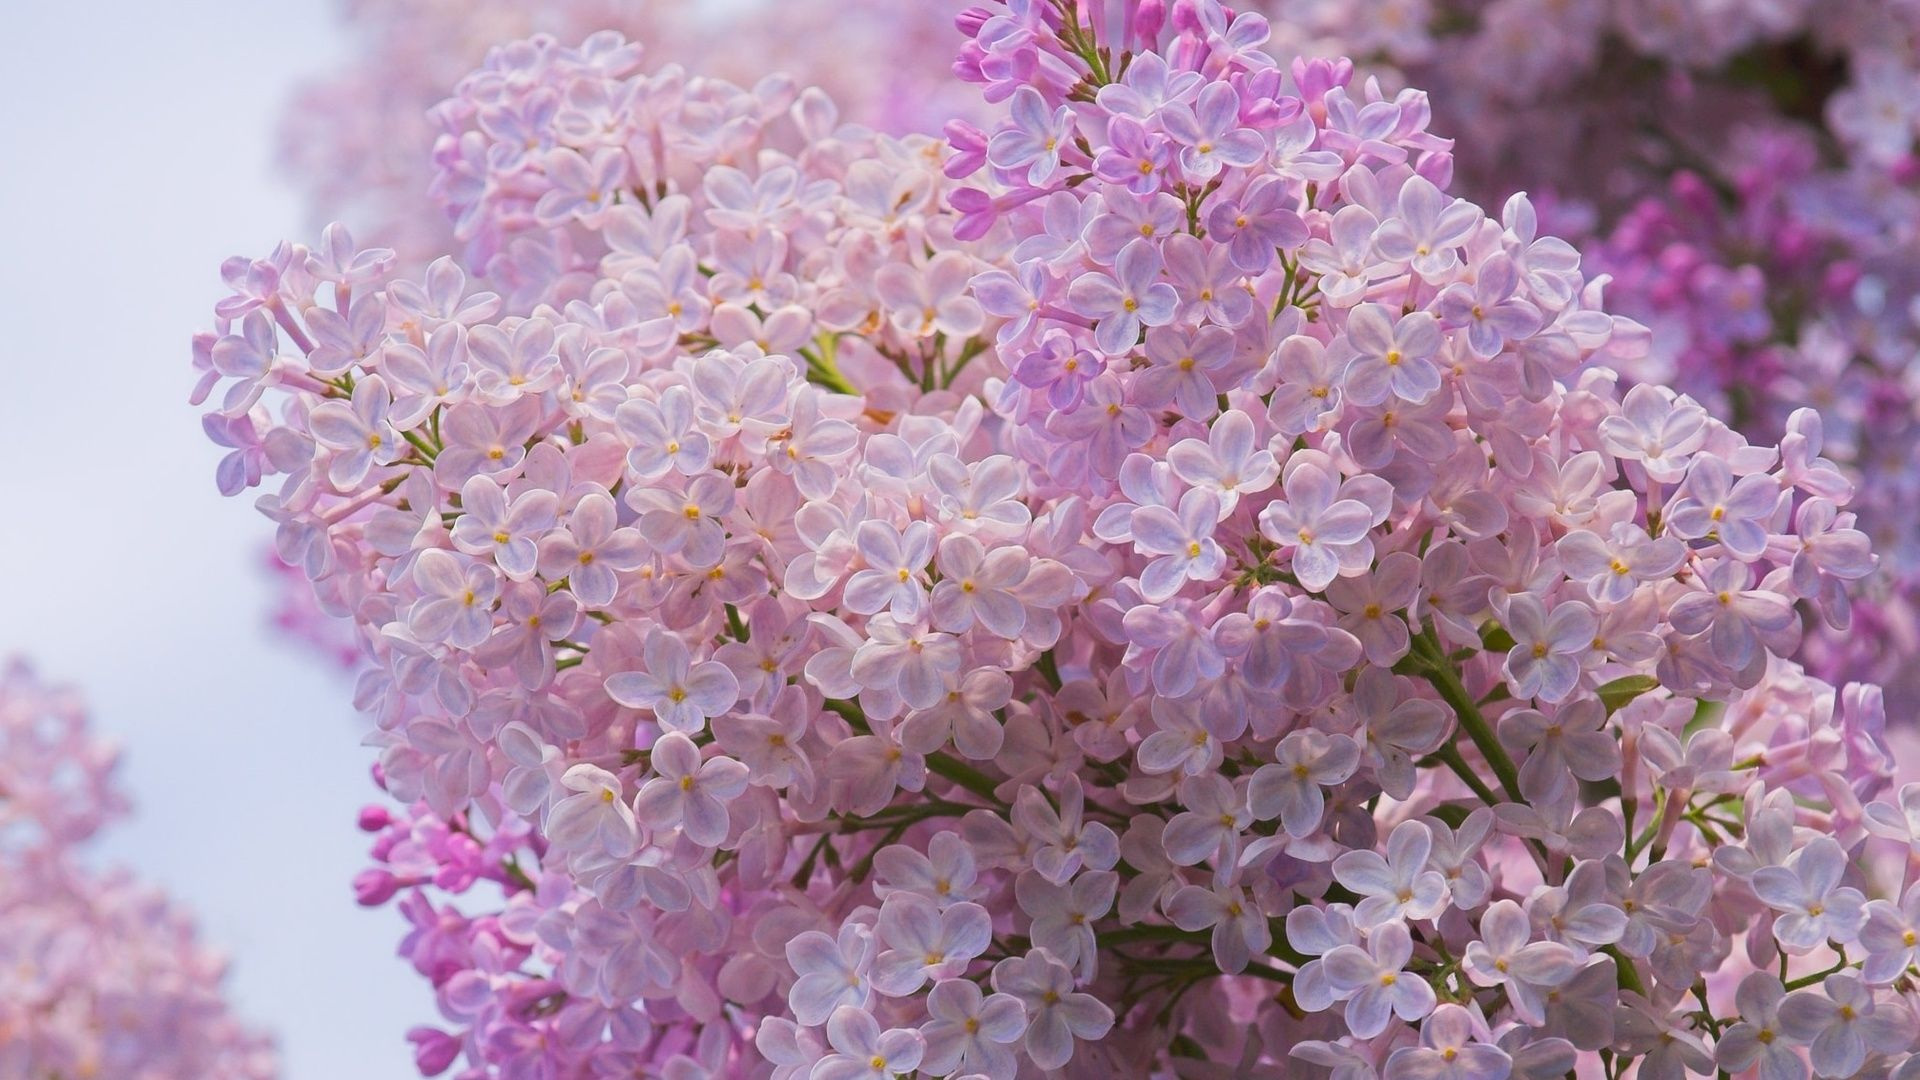 Lilac hd wallpaper for laptop